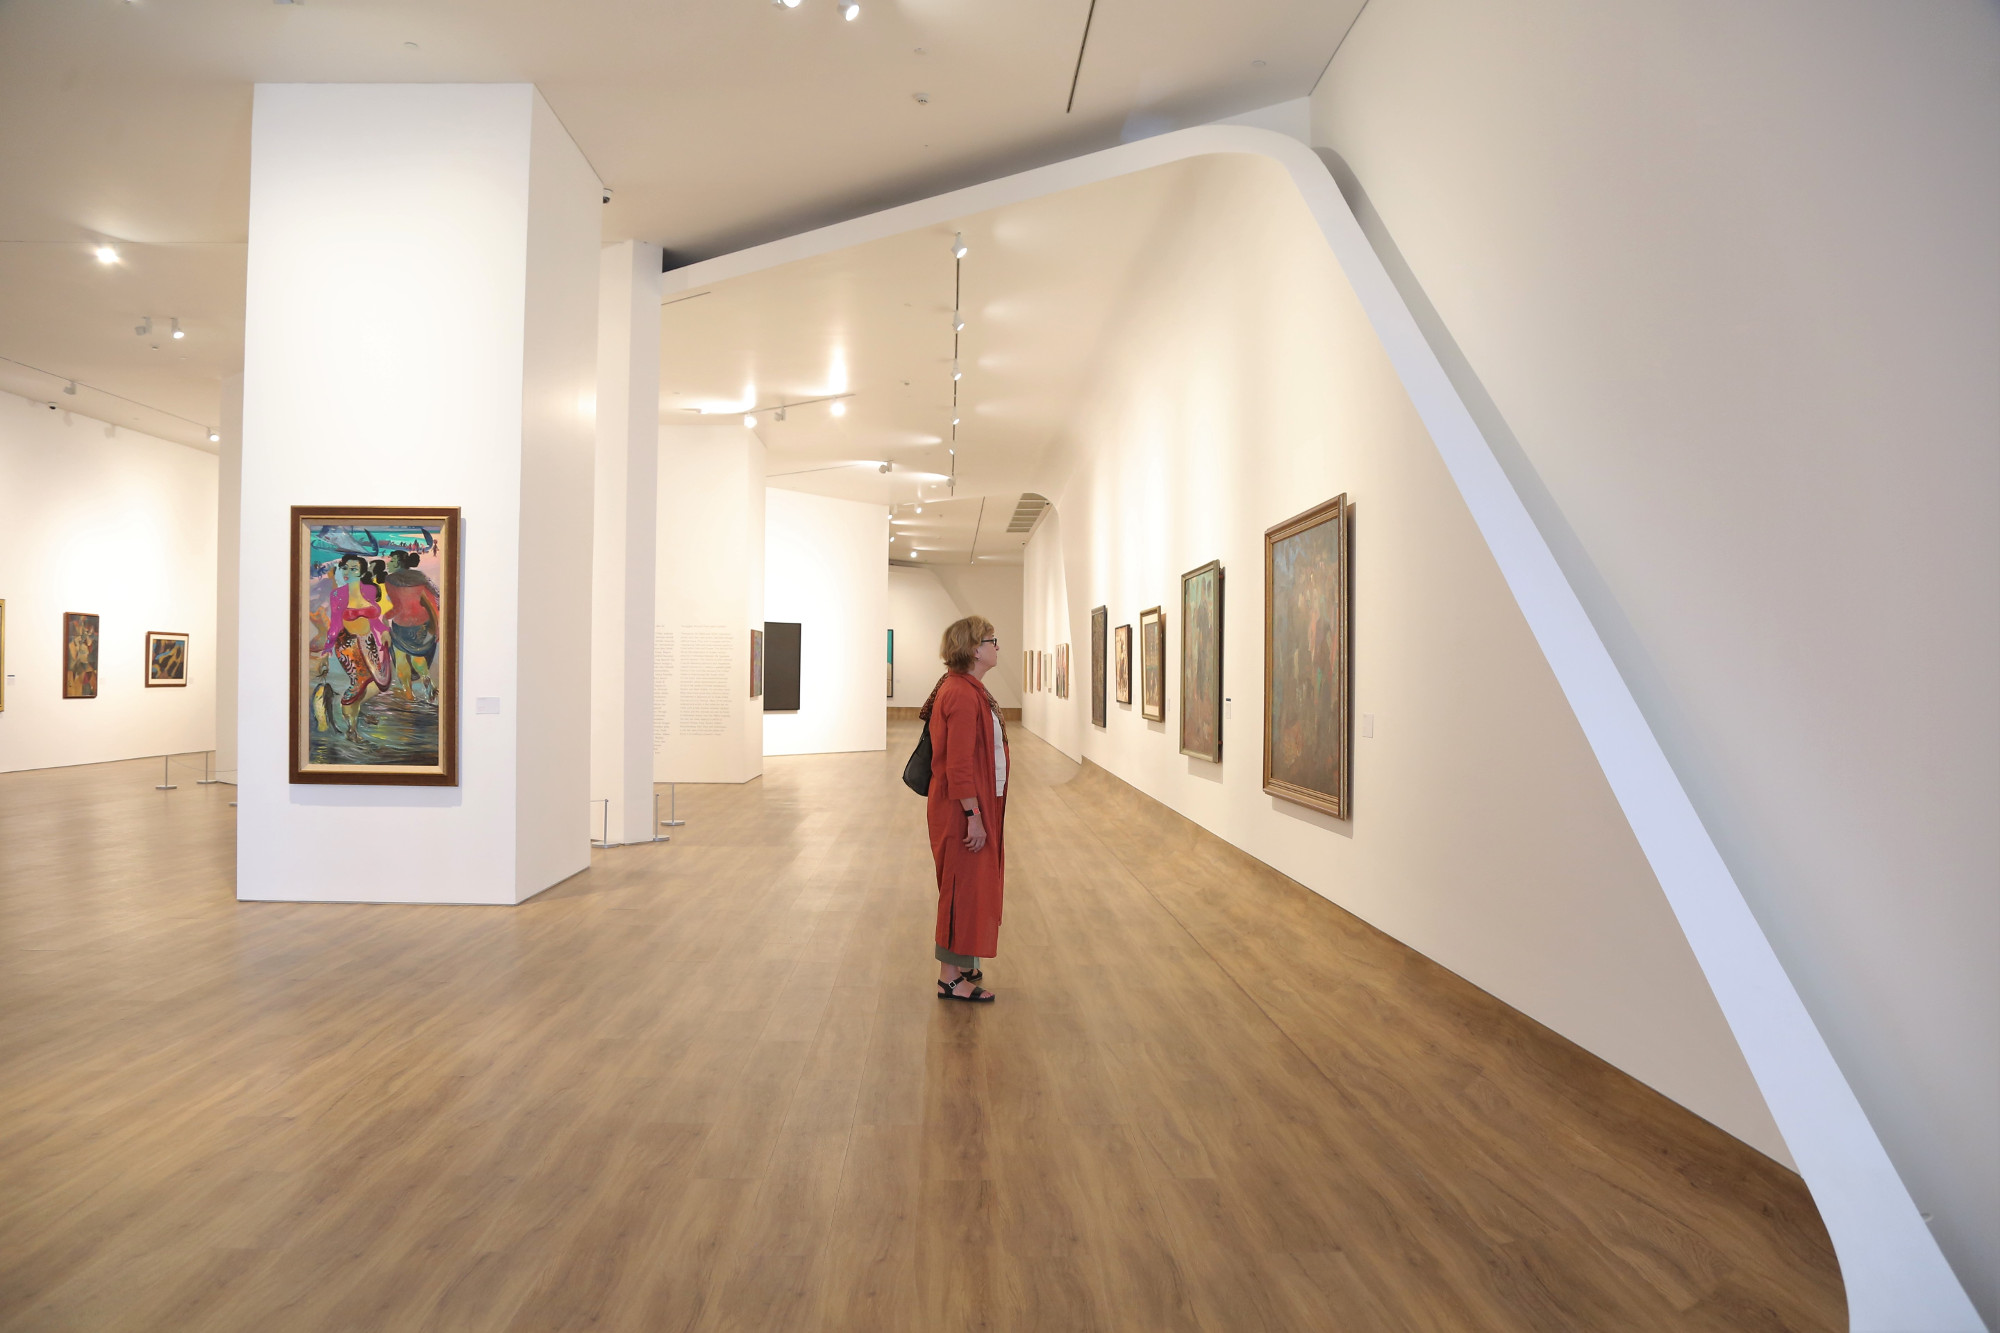 Indonesia's first modern art museum is now open in Jakarta